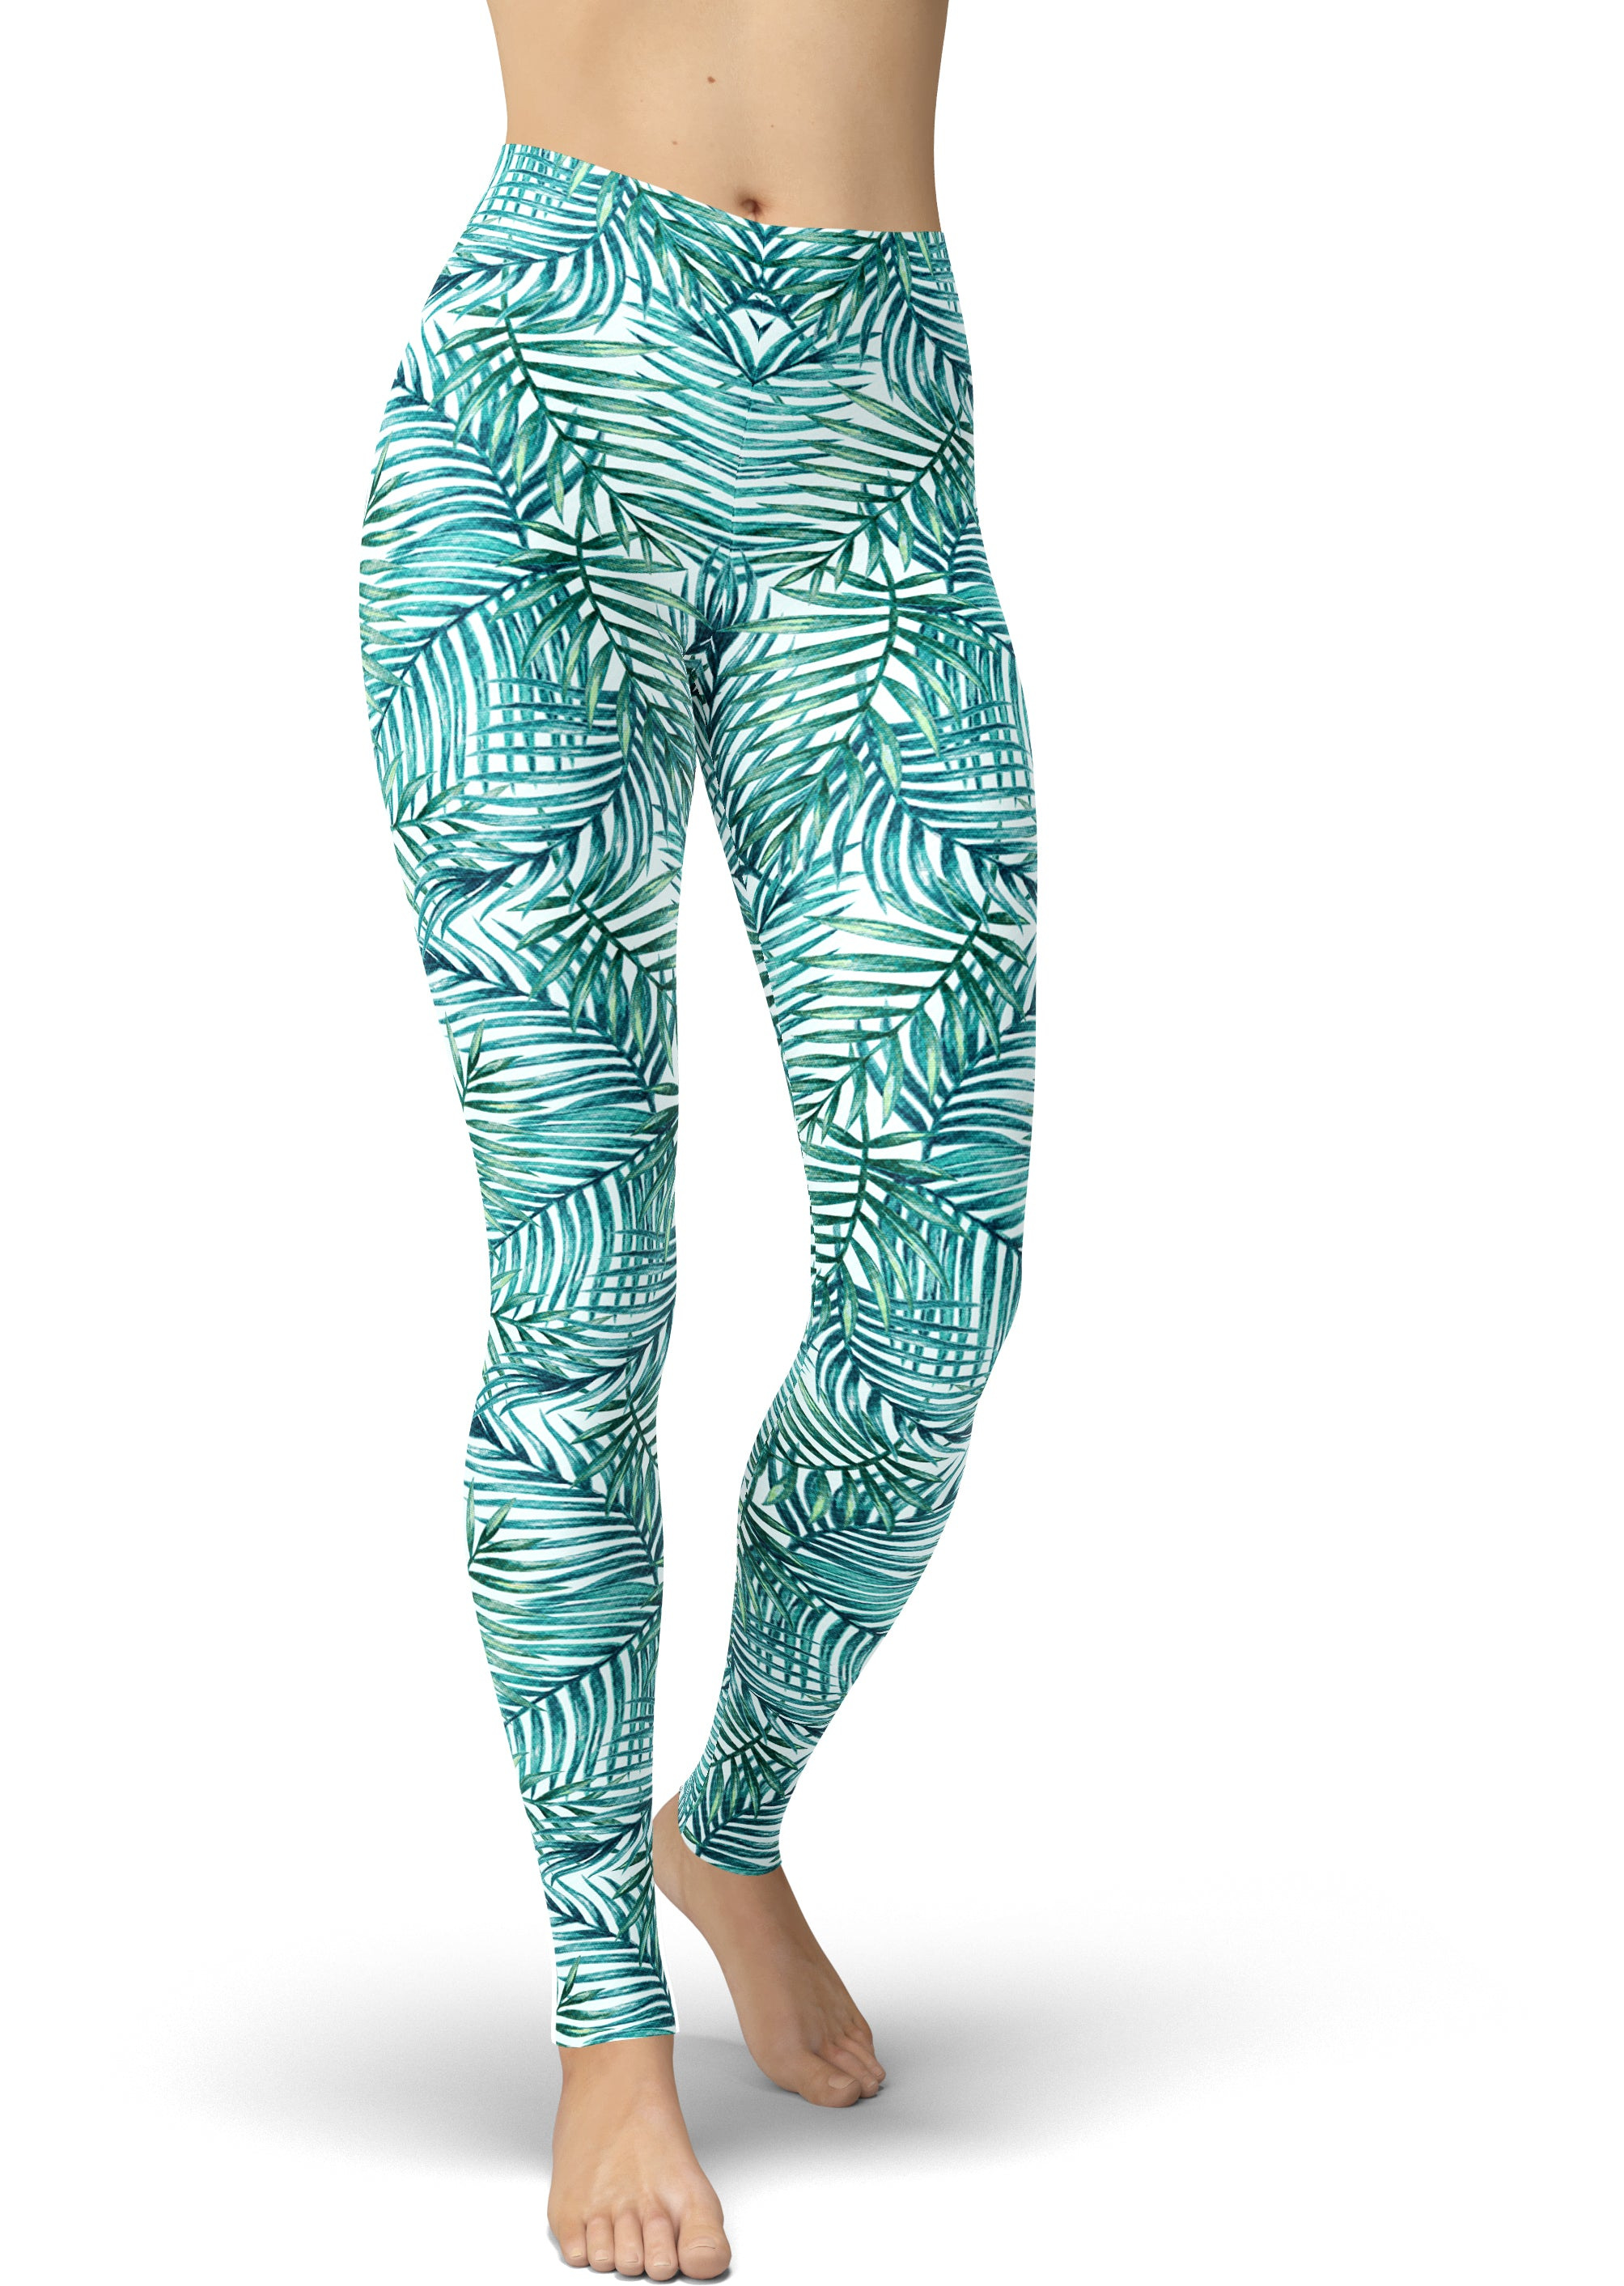 Tropic Mint Breeze Leggings